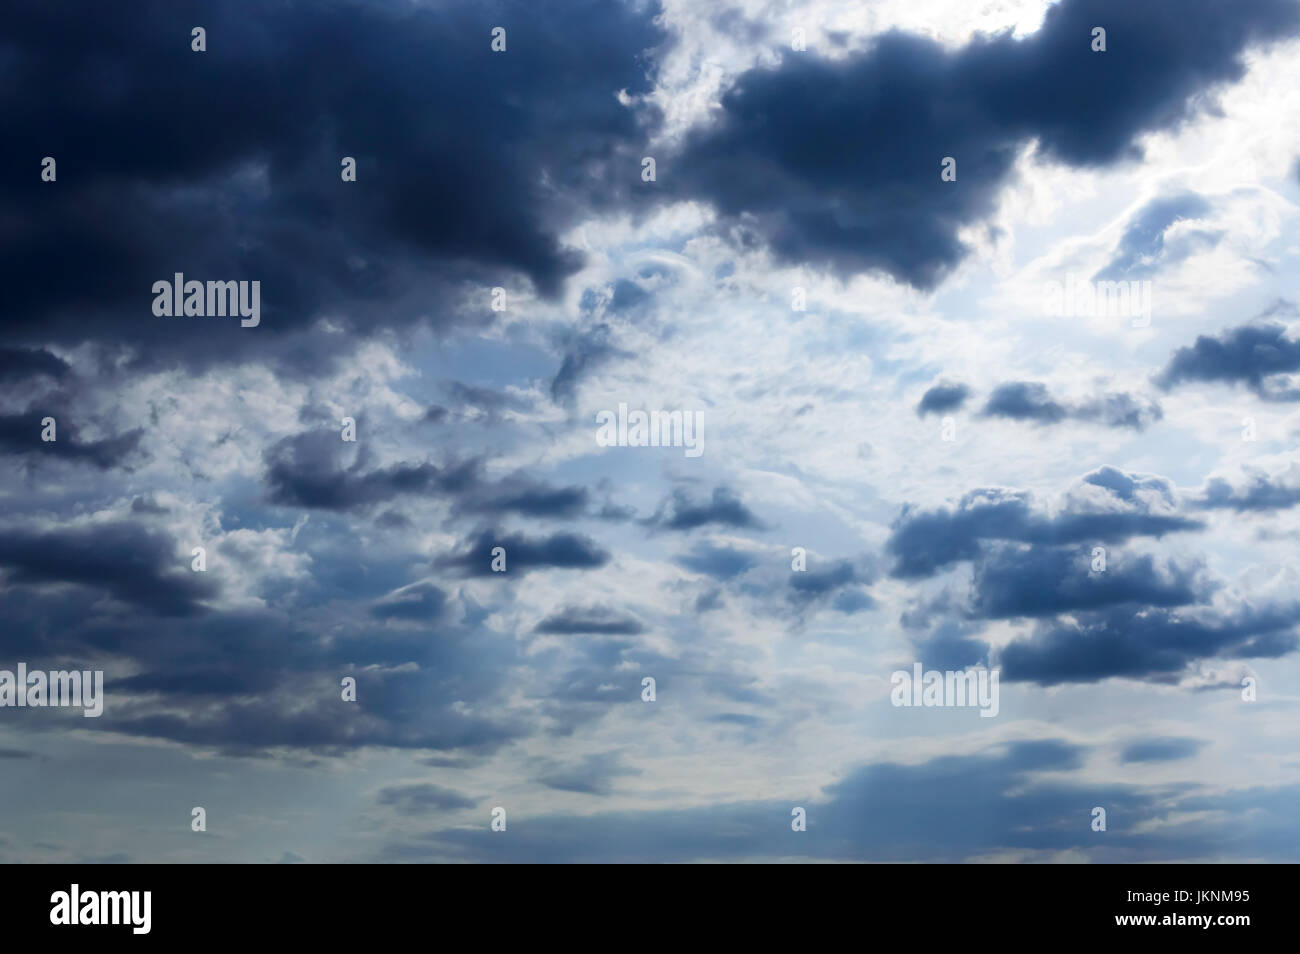 A blue sky with storm clouds. Before the rain.; - Stock Image